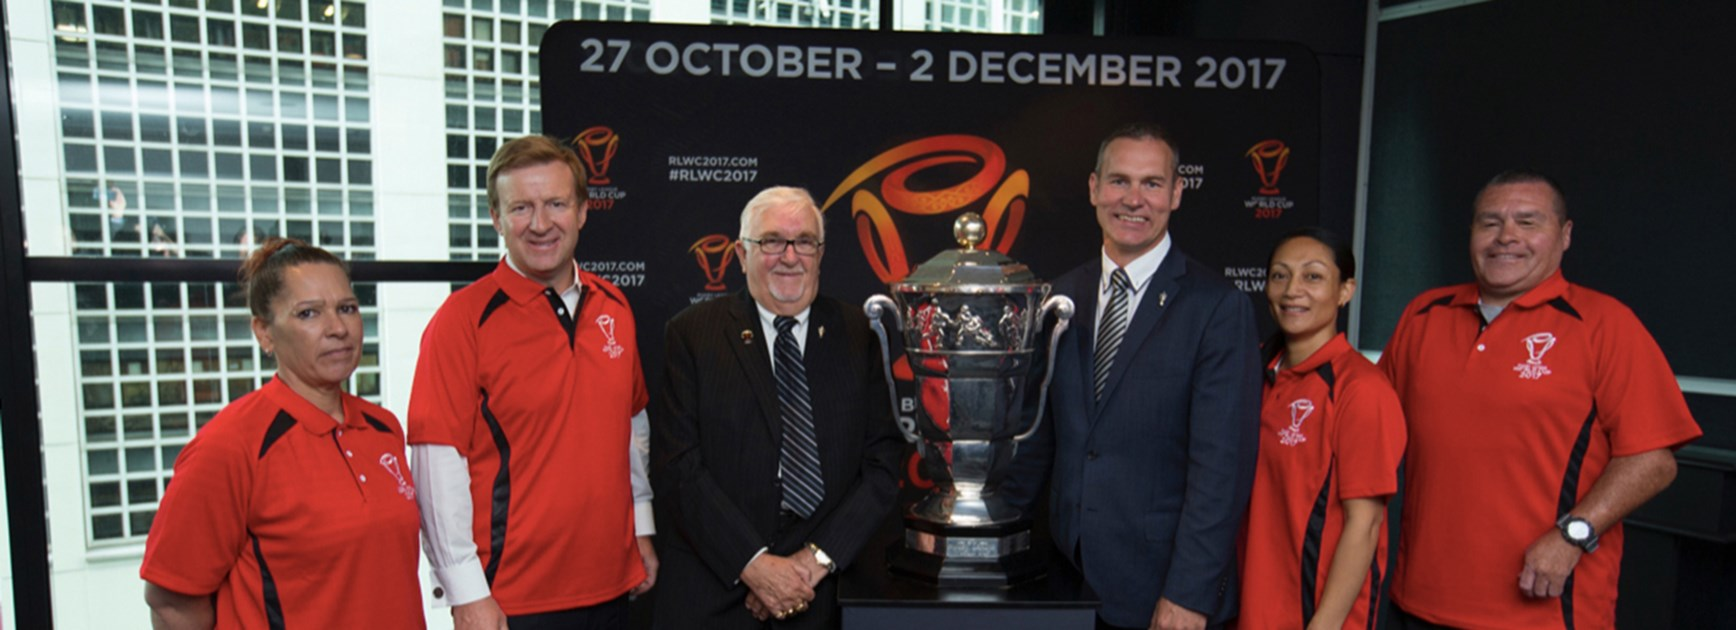 Dr Coleman, Sir Peter Leitch and RLWC2017 CEO Andrew Hill with RLWC2017 NZ Community Ambassadors.